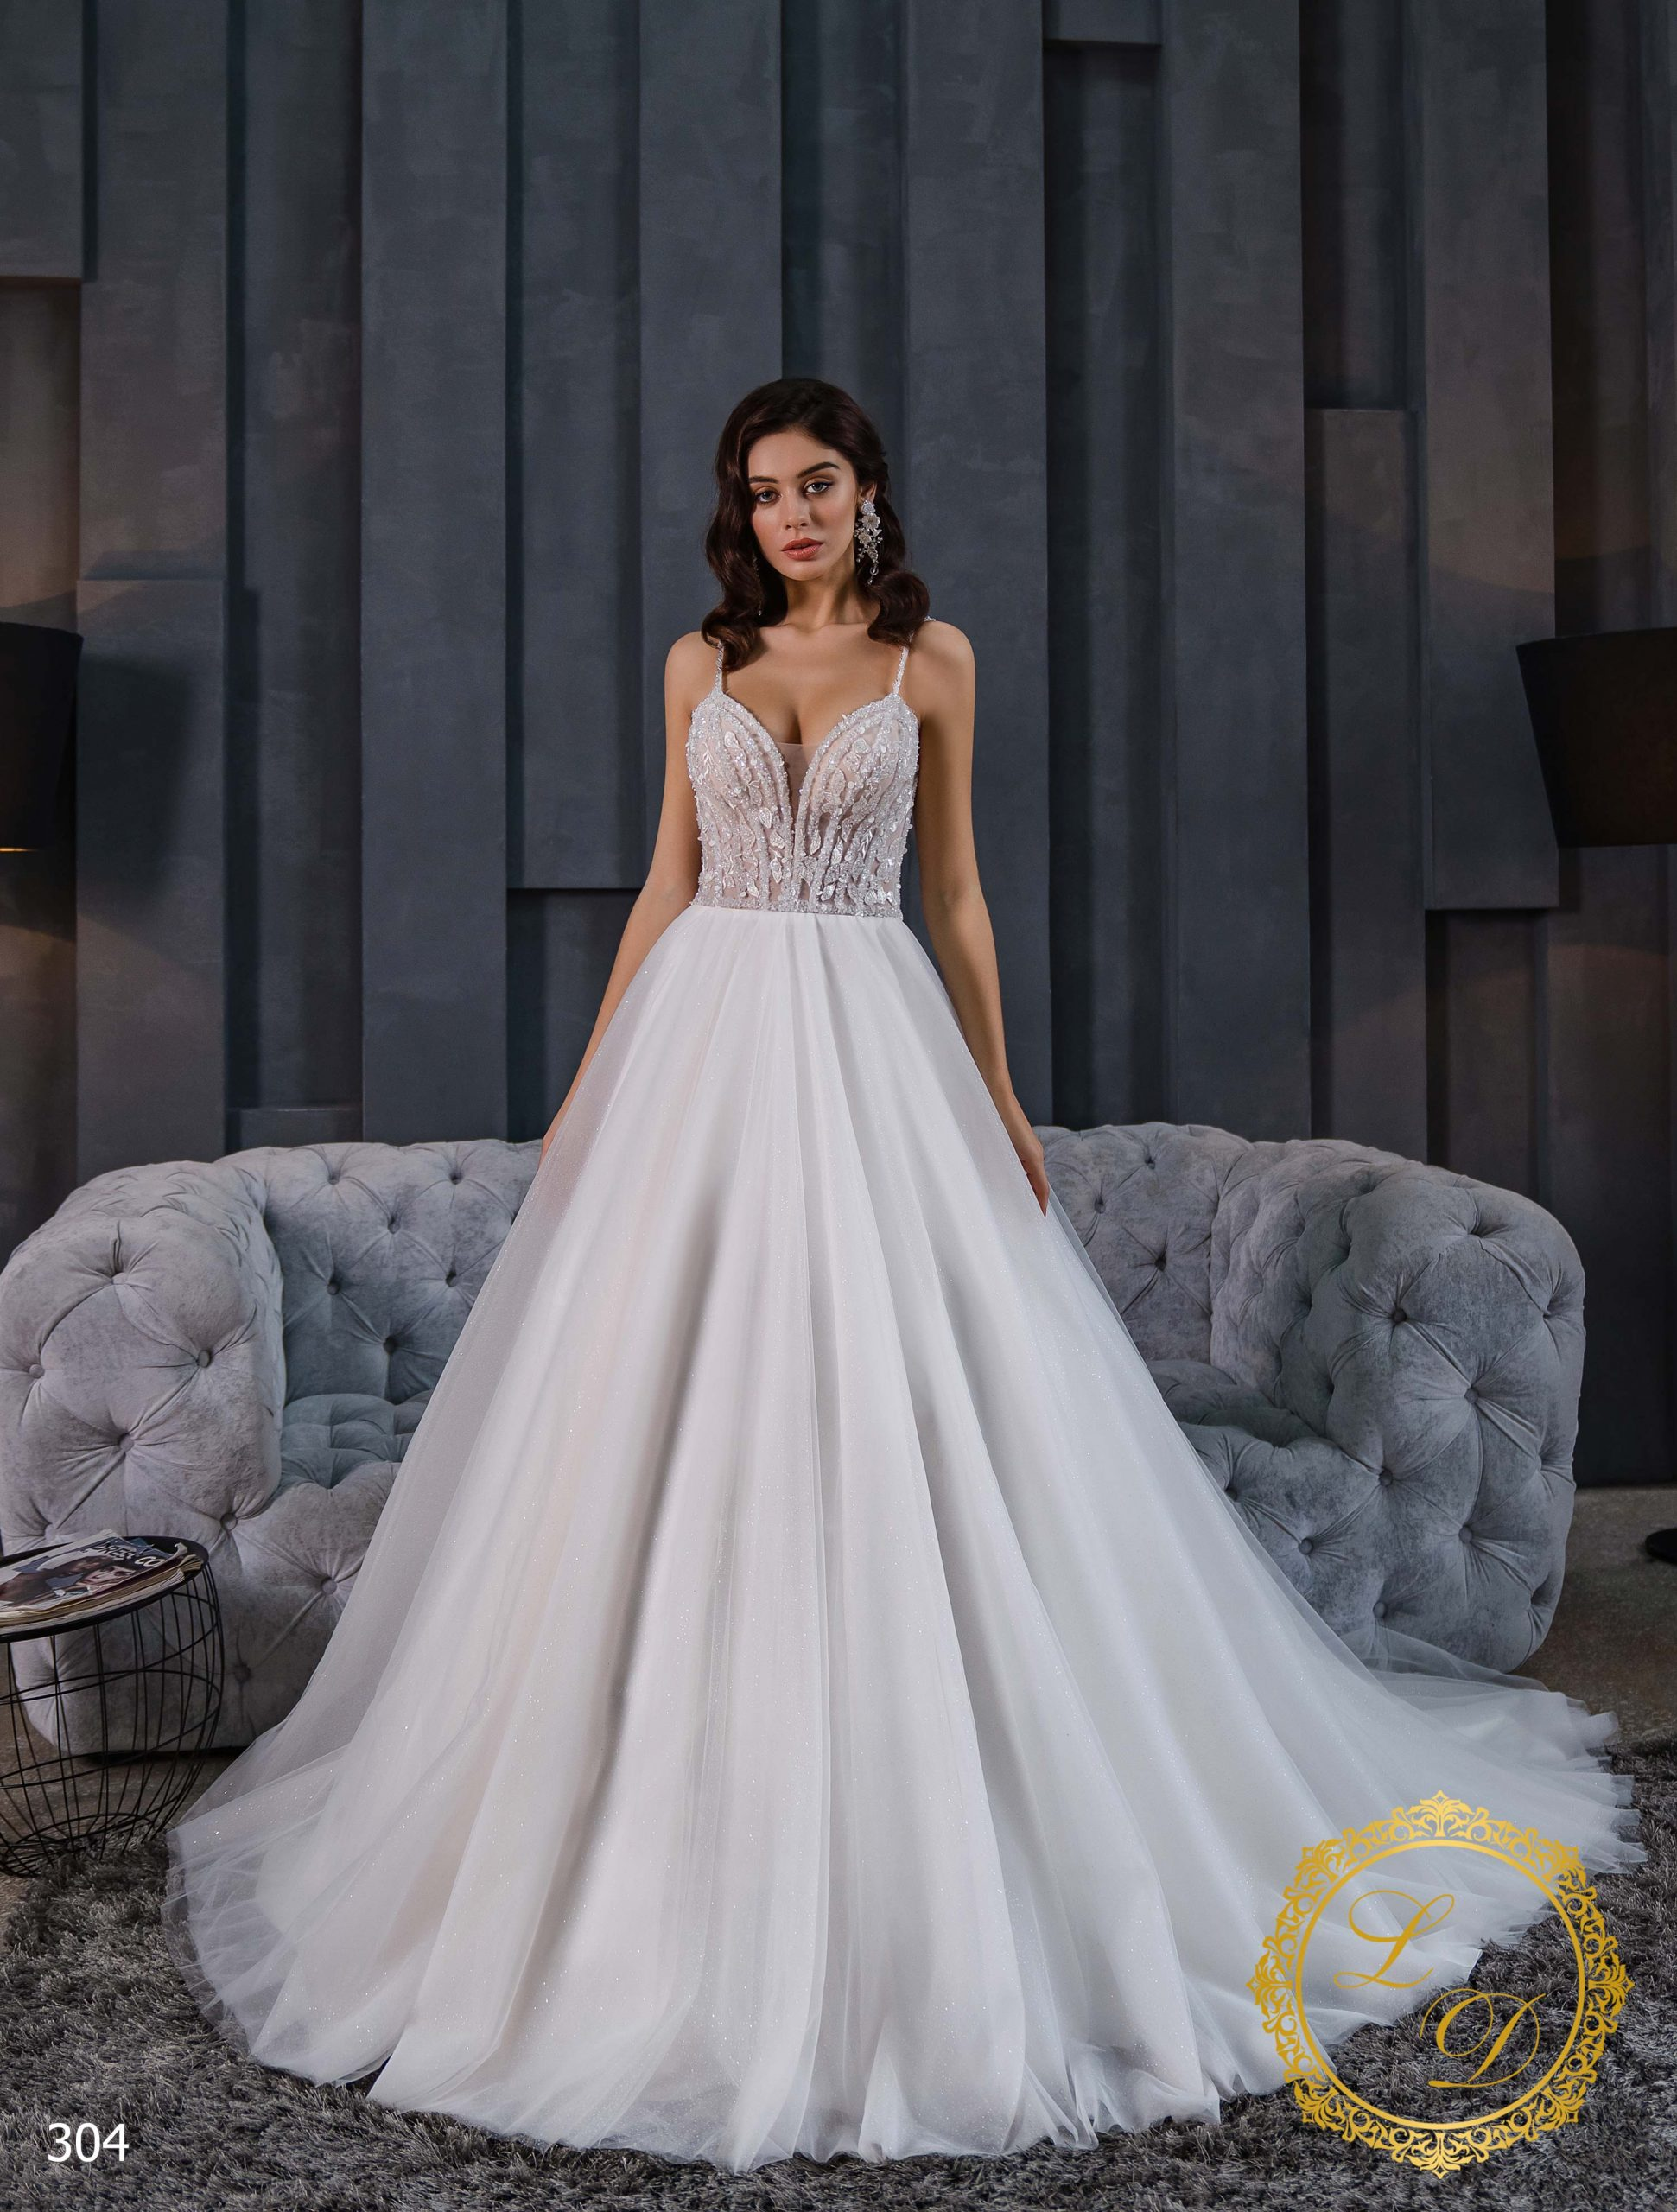 Wedding Dress Lady Di 304-1